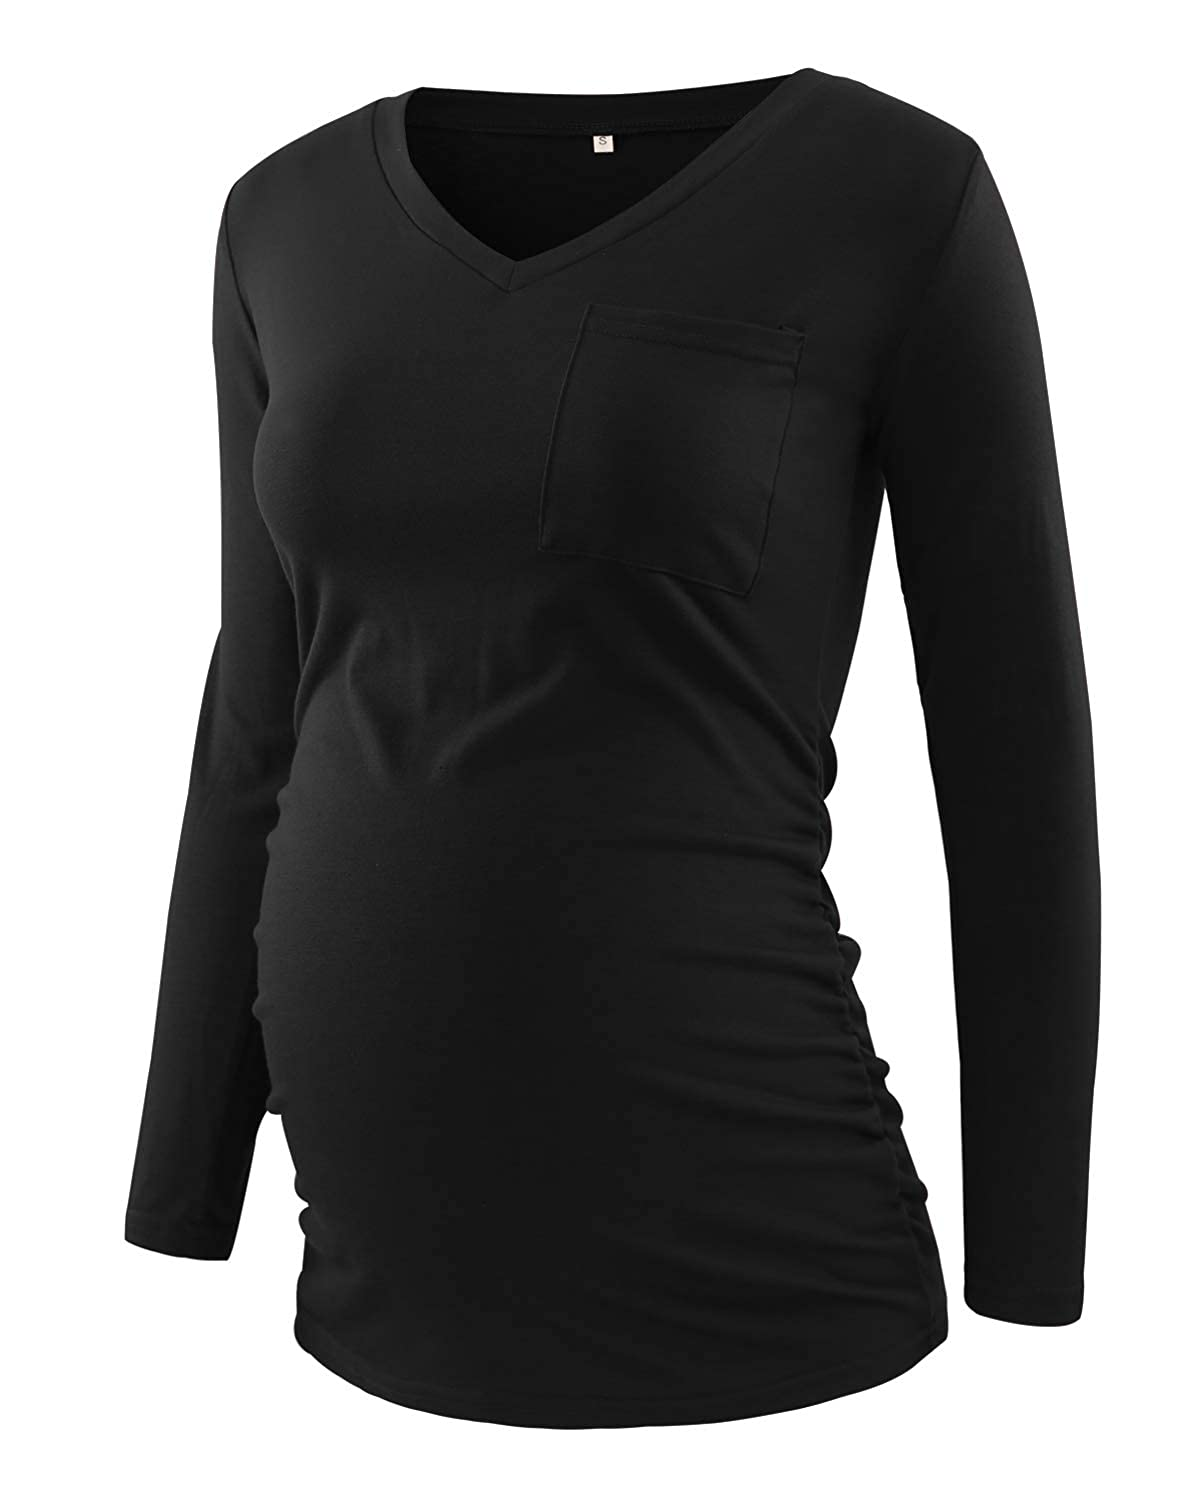 BBHoping Womens Casual Maternity Tops Long Sleeve V Neck Colorblock Pregnancy T-Shirt with Pocket